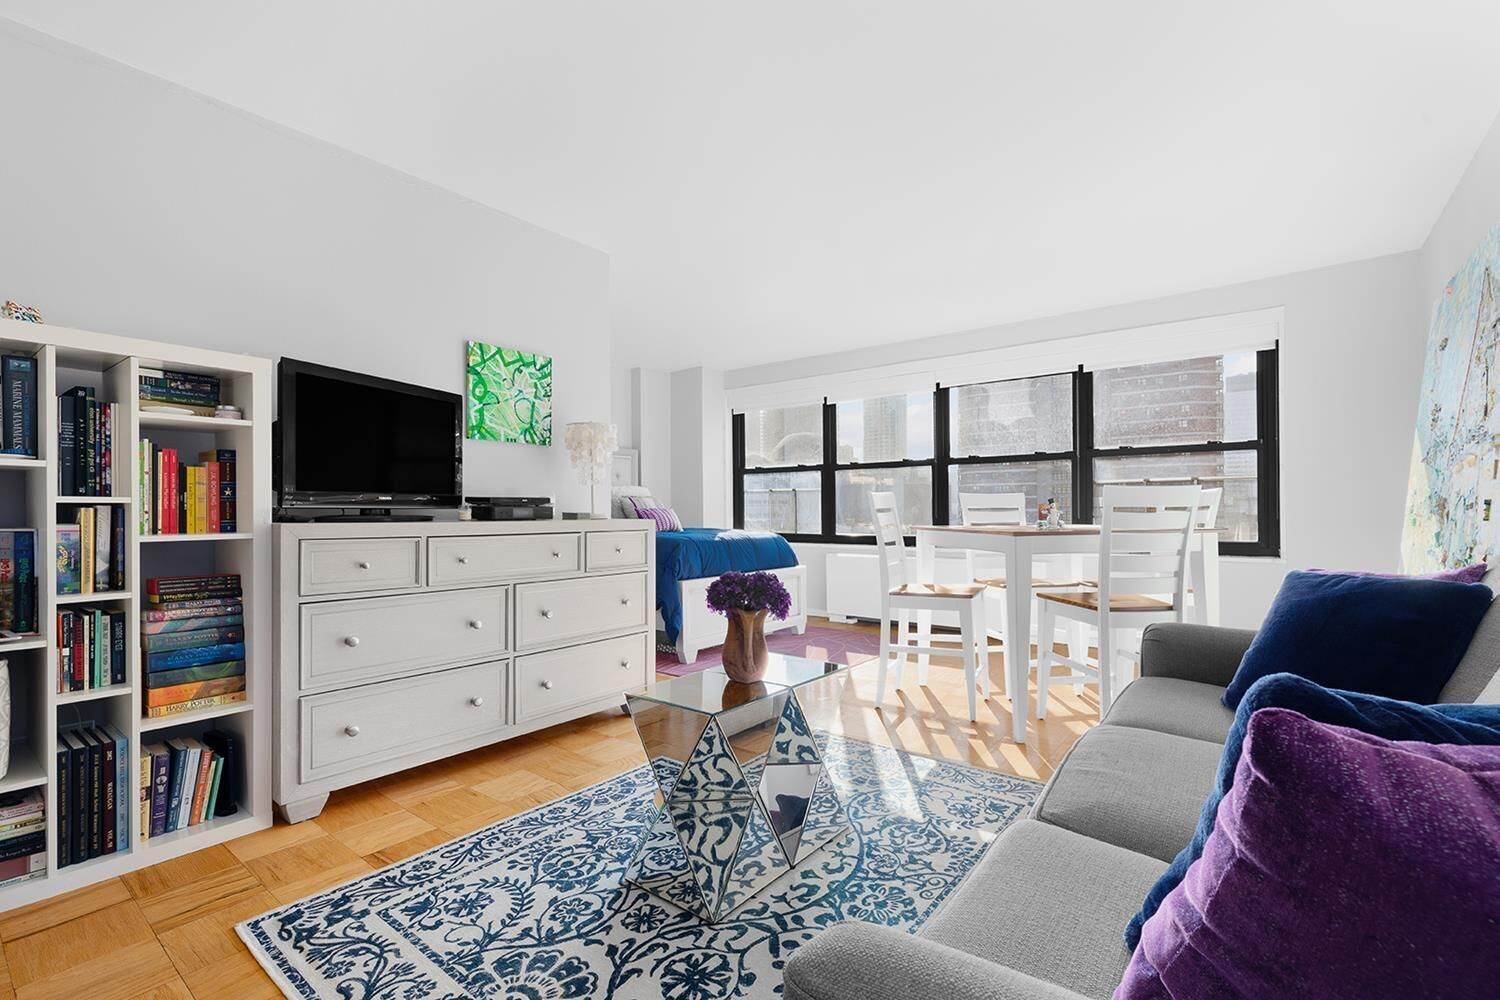 Apartment for sale at 140 West End Avenue, Apt 10-F